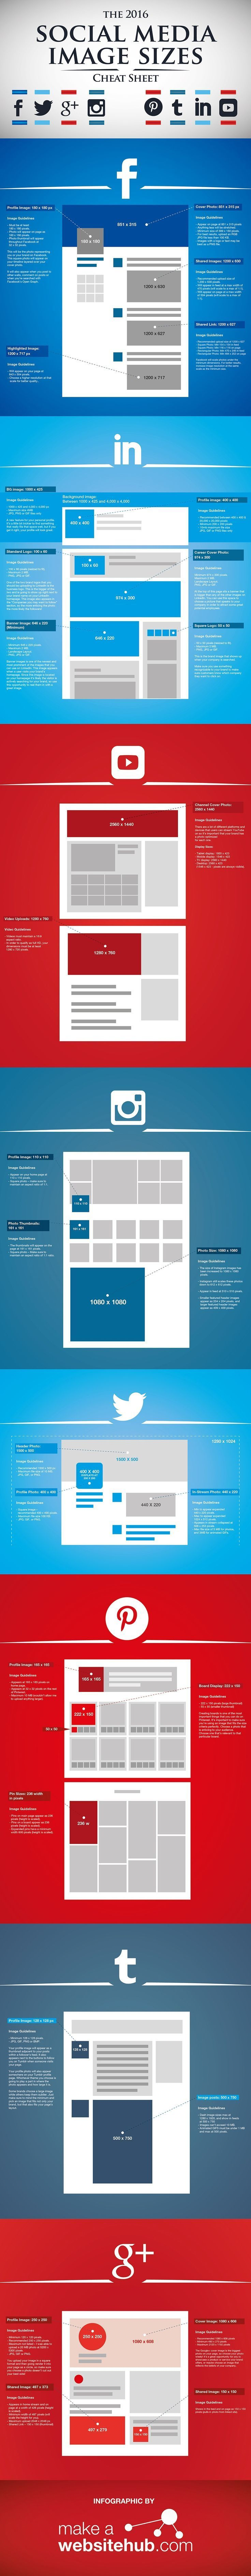 Ultimate social media cheat sheet for perfectly sized images in 2016 - infographic RefugeMarketing.com